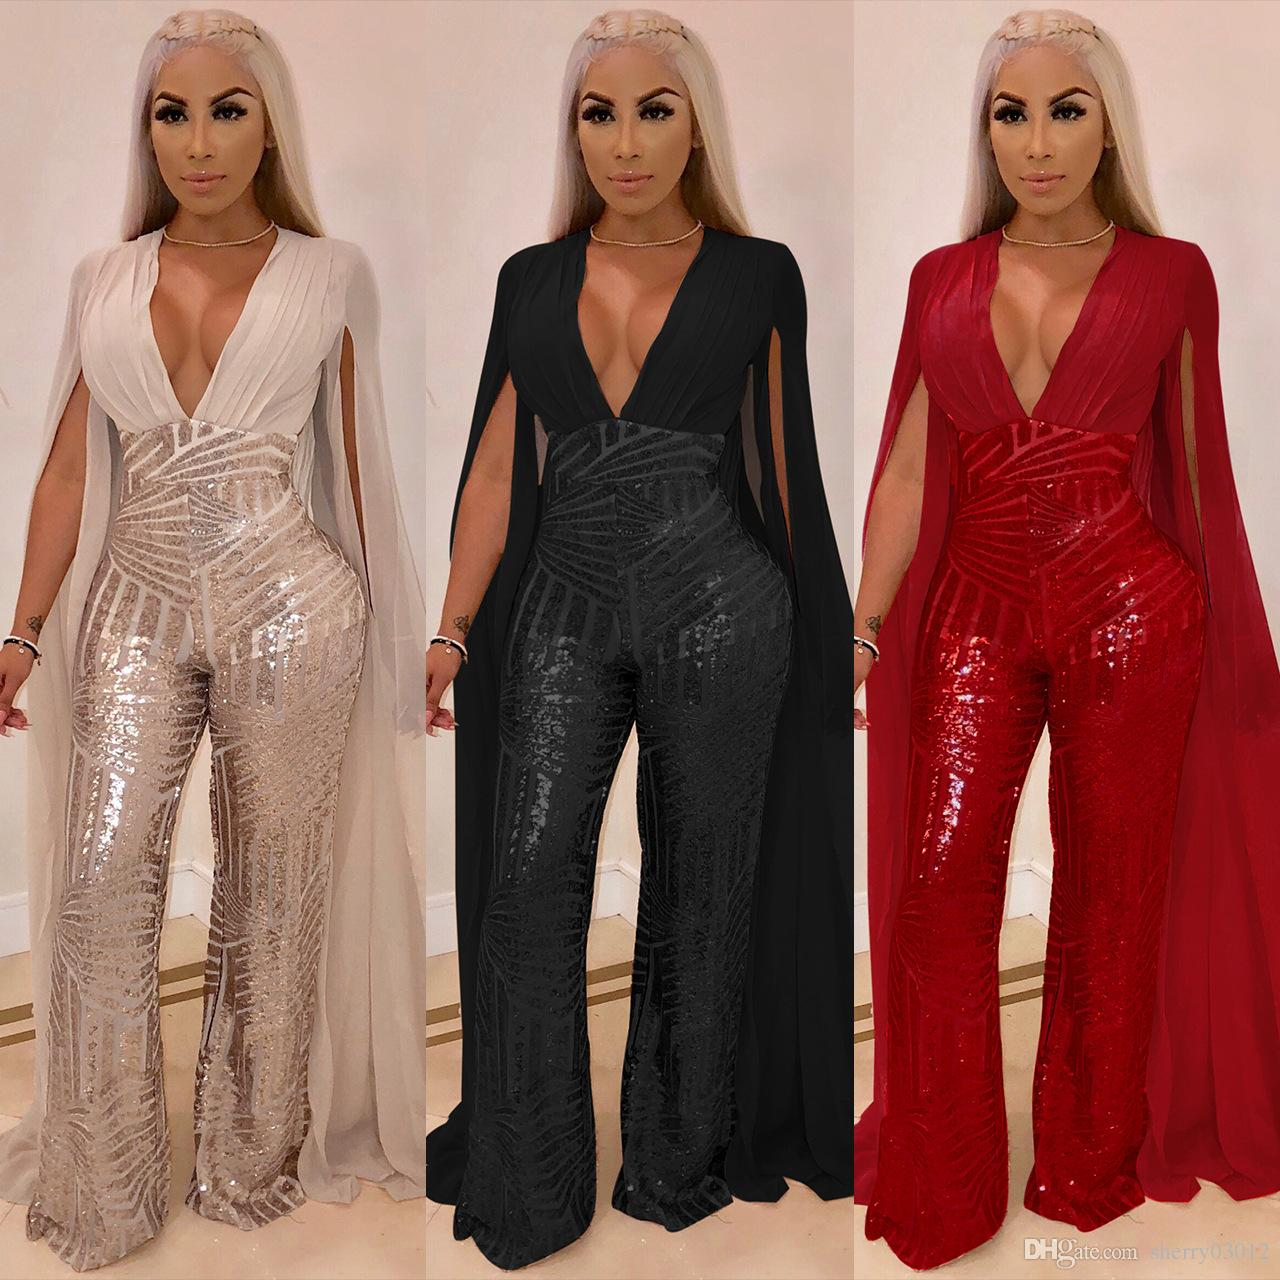 51a857fd4ca1 2019 Women Chiffon Split Long Sleeve Sequin Jumpsuit 2019 Sexy V Neck  Patchwork Loose Wide Leg Sleeved Romper Evening Sparkly Jumpsuit Overalls  From ...